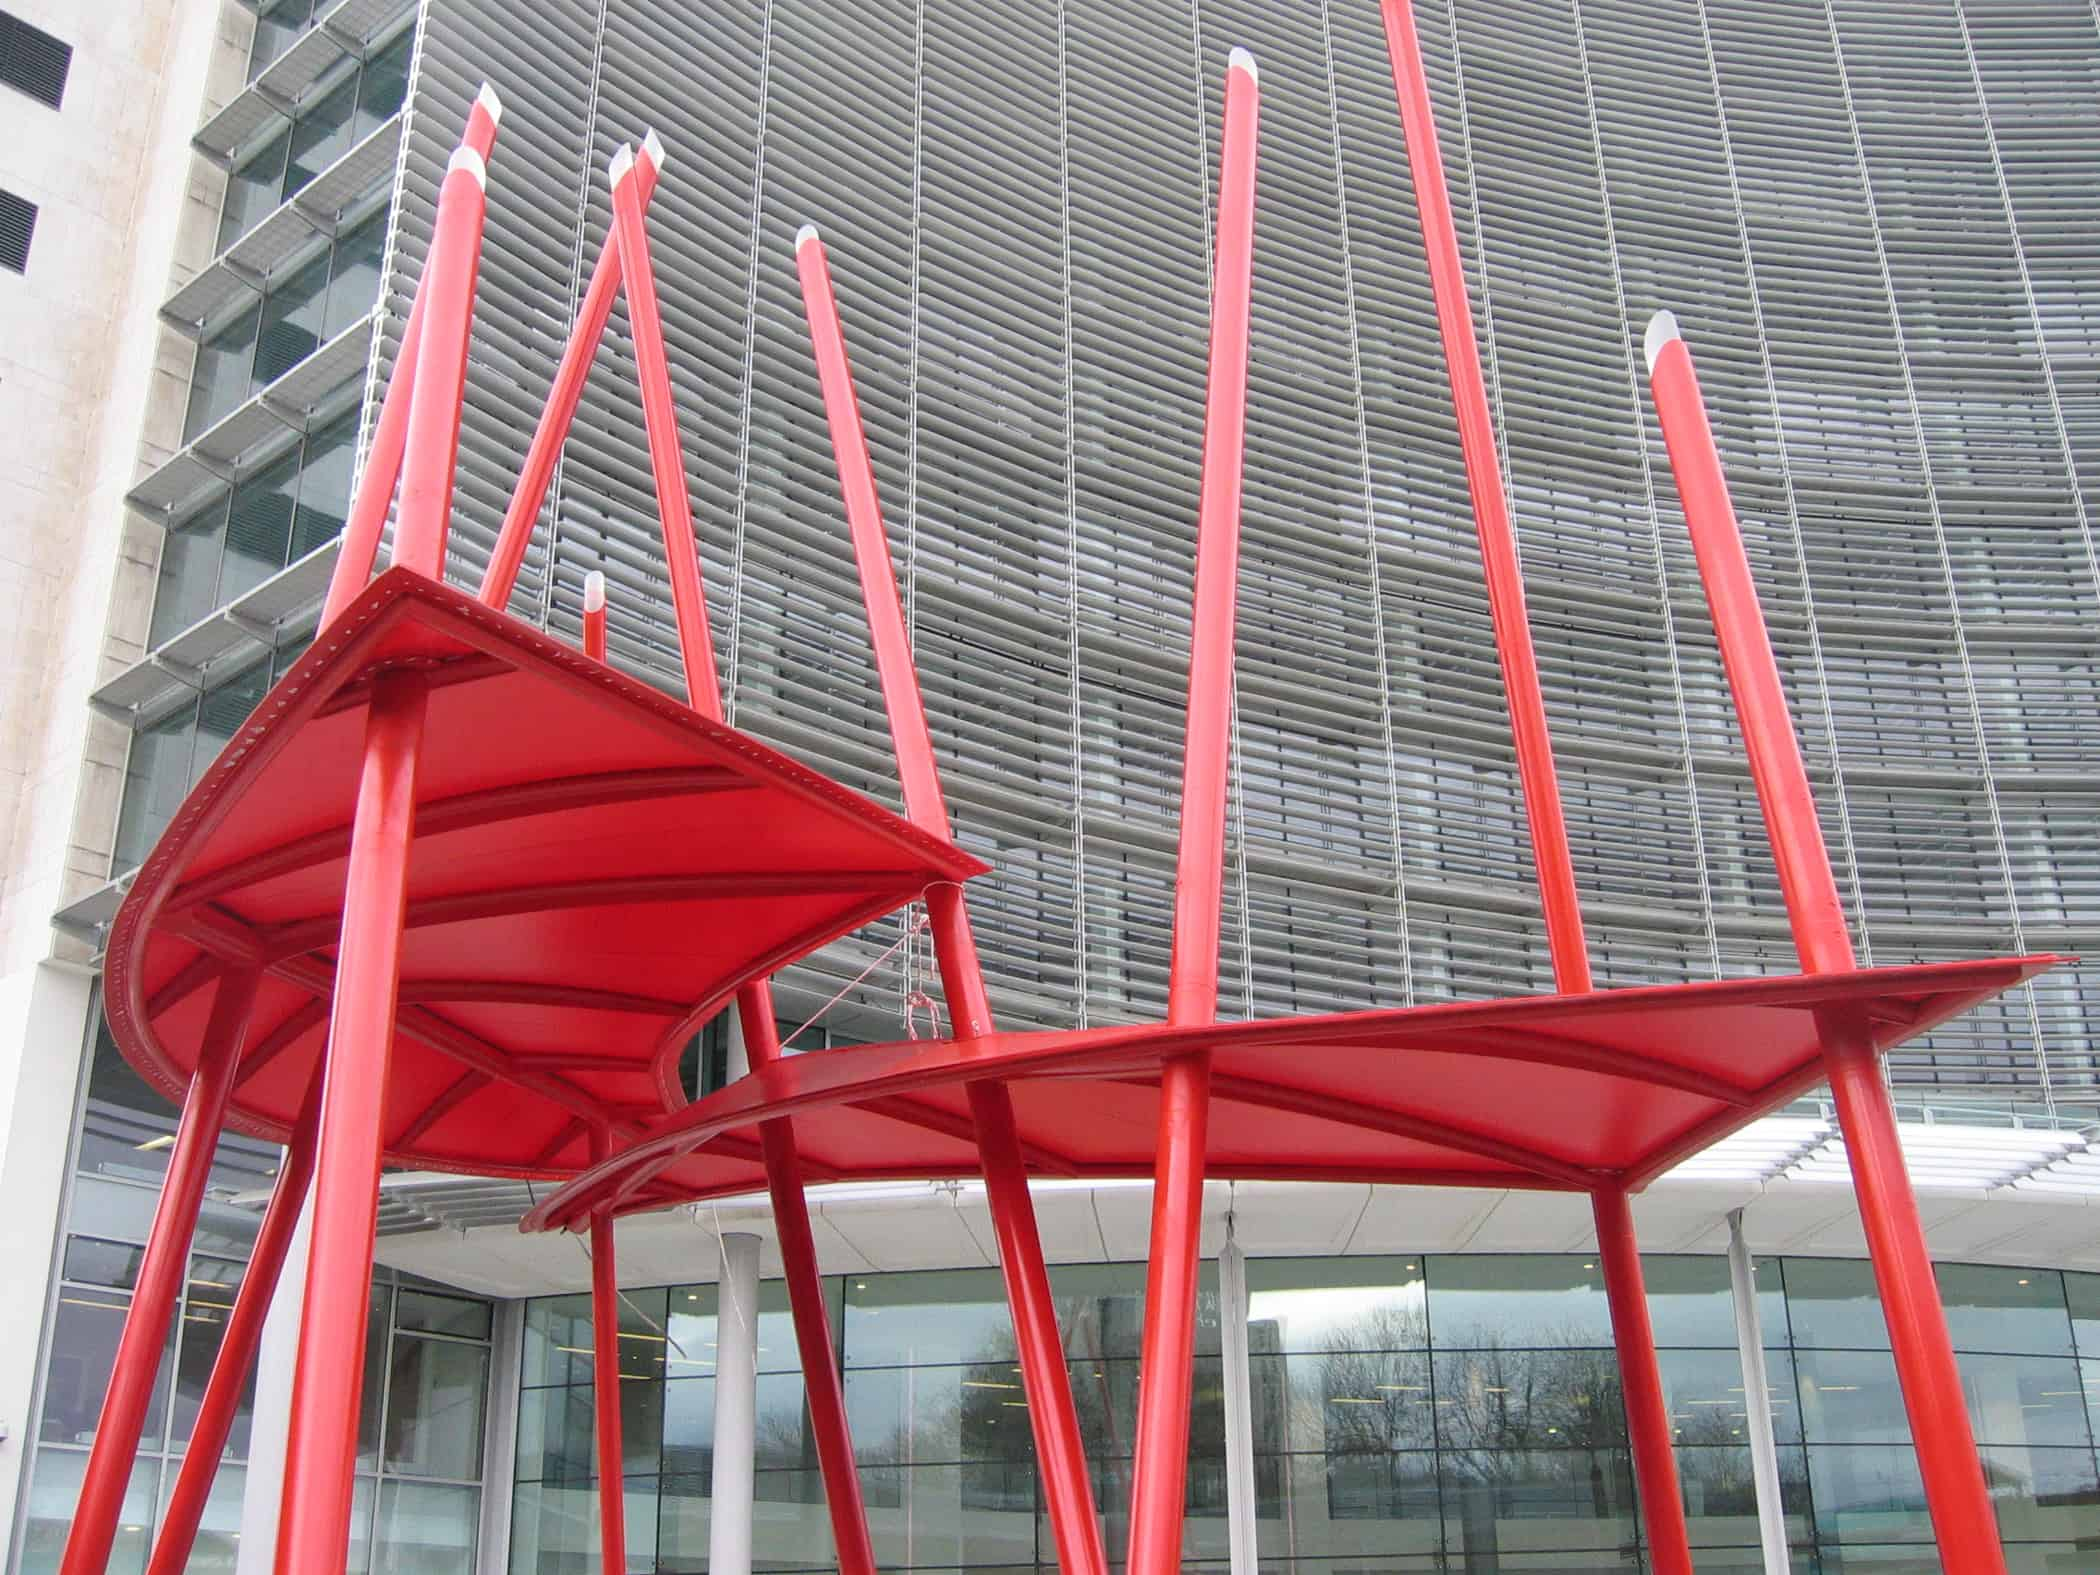 Architectural Canopy Structures : Tensile fabric architecture an introduction architen